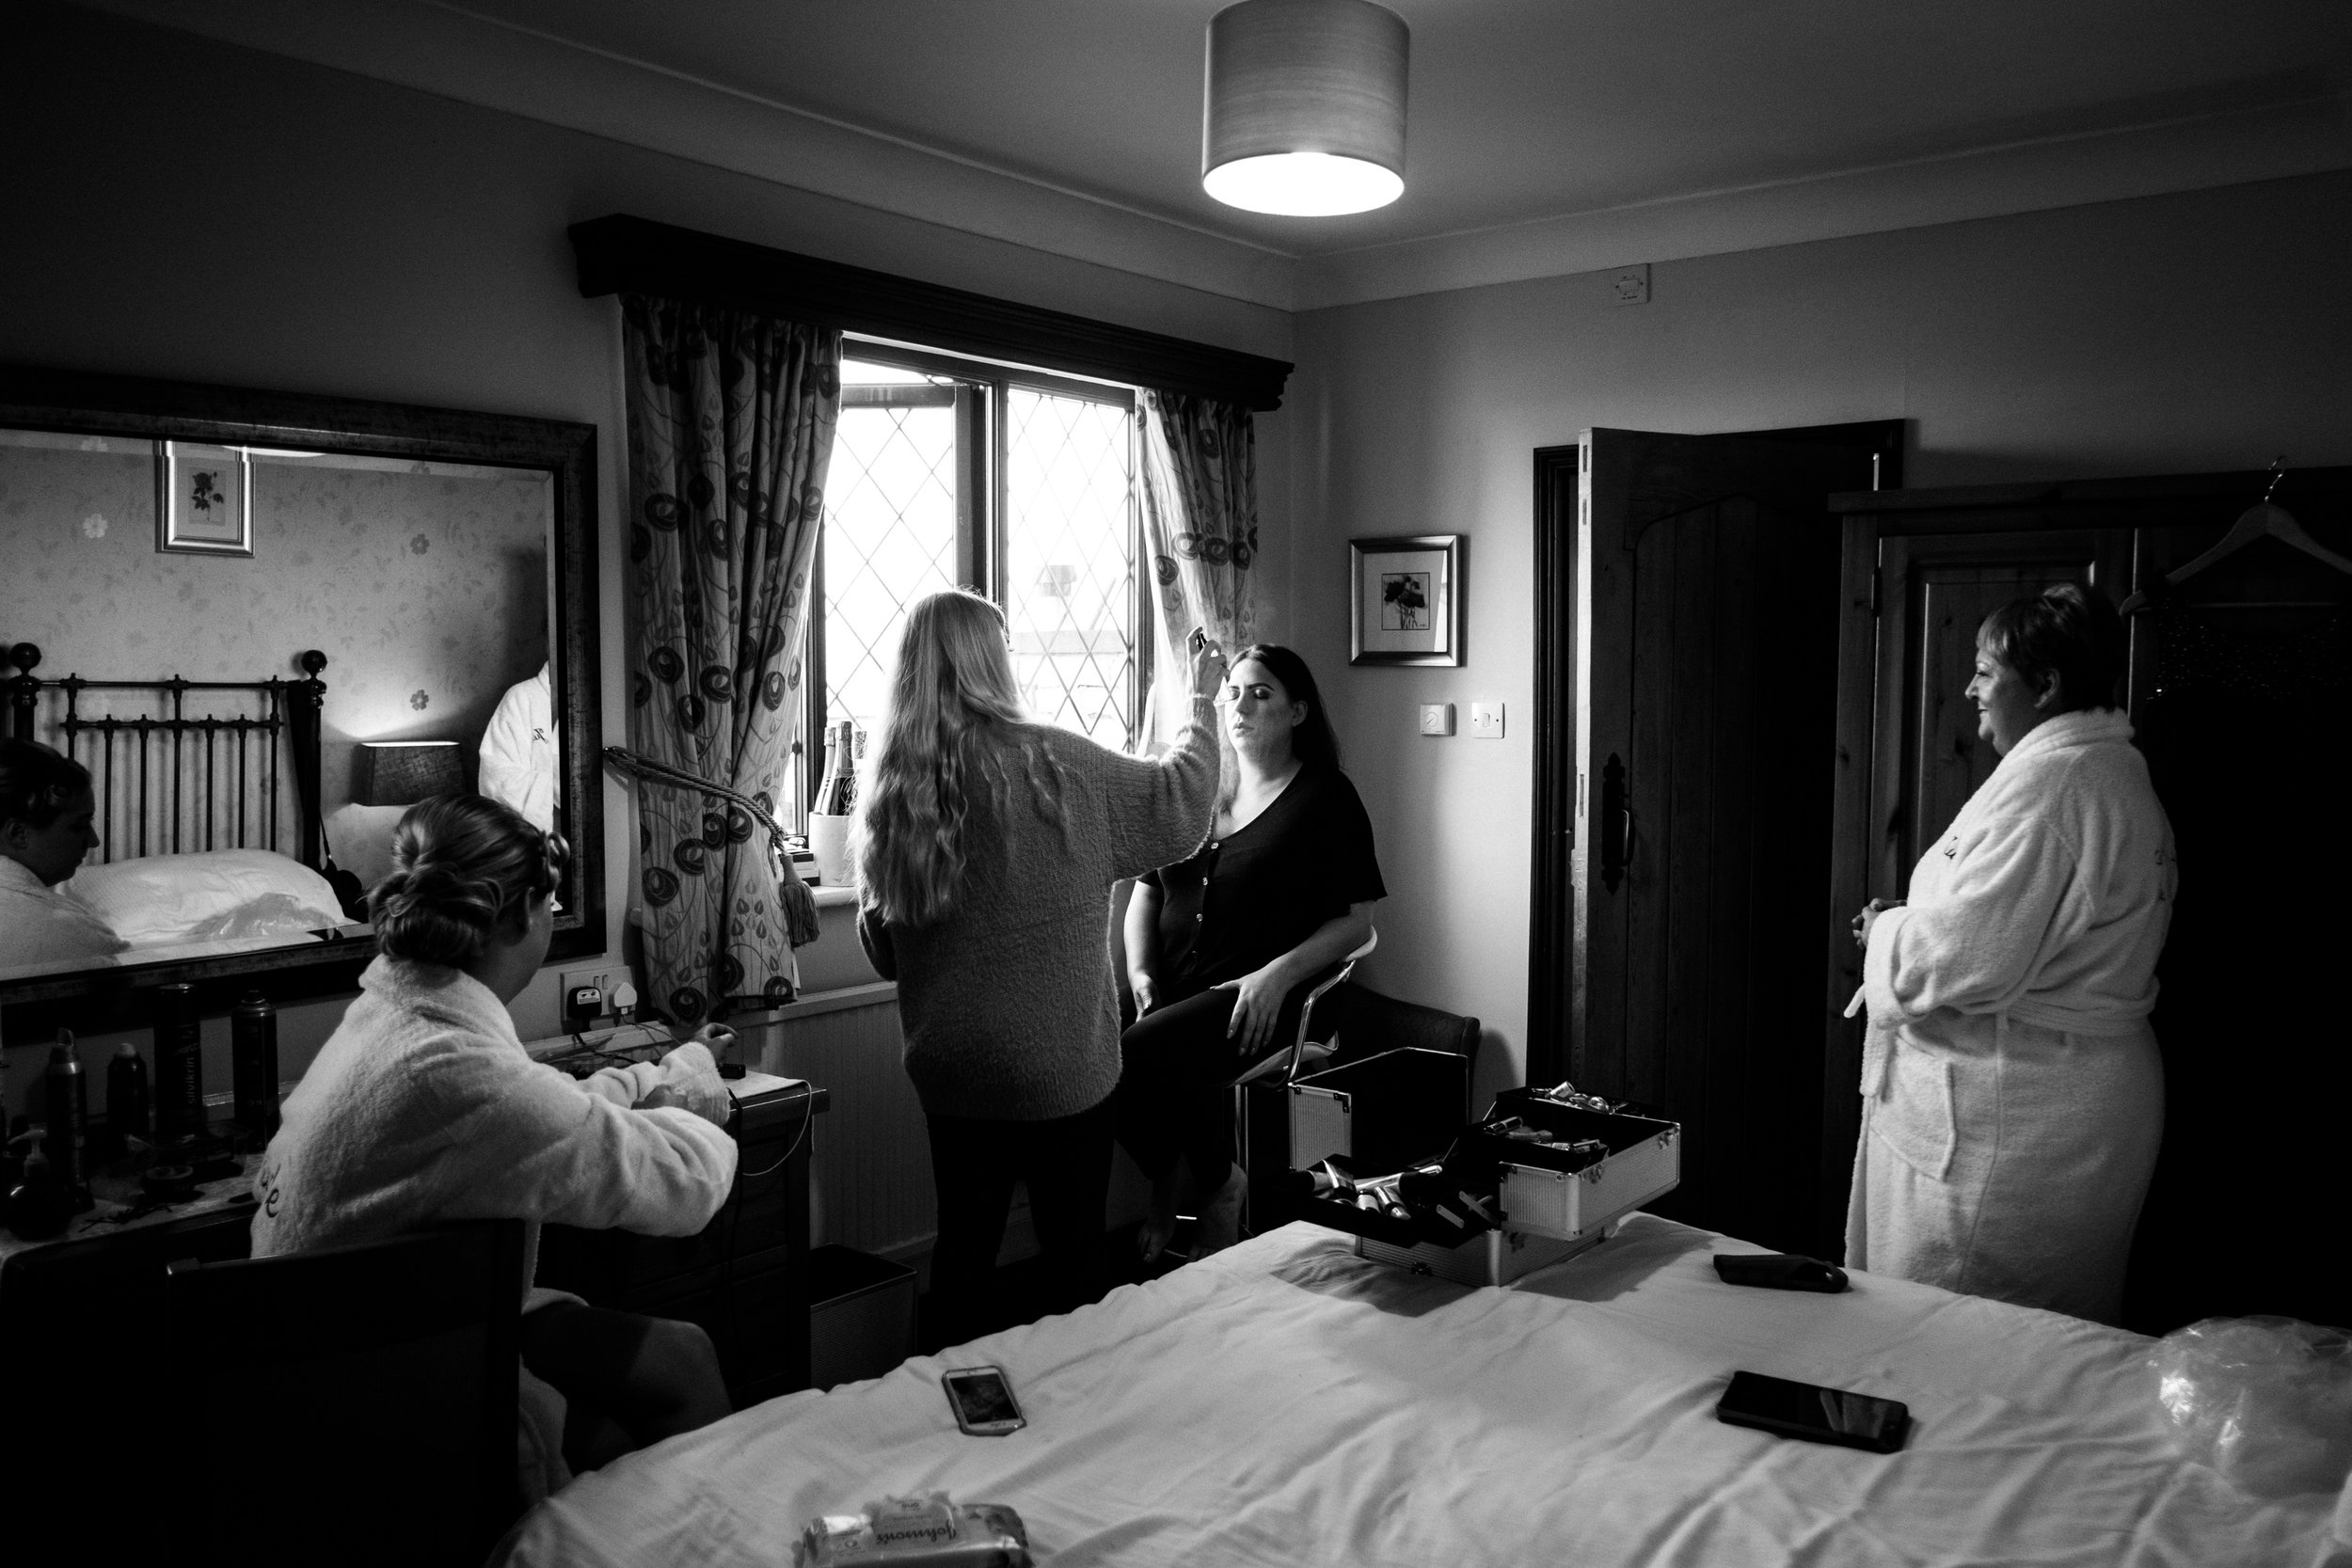 Autumn Wedding Photography at The Three Horseshoes, Blackshaw Moor, Staffordshire Moorlands - Jenny Harper-5.jpg